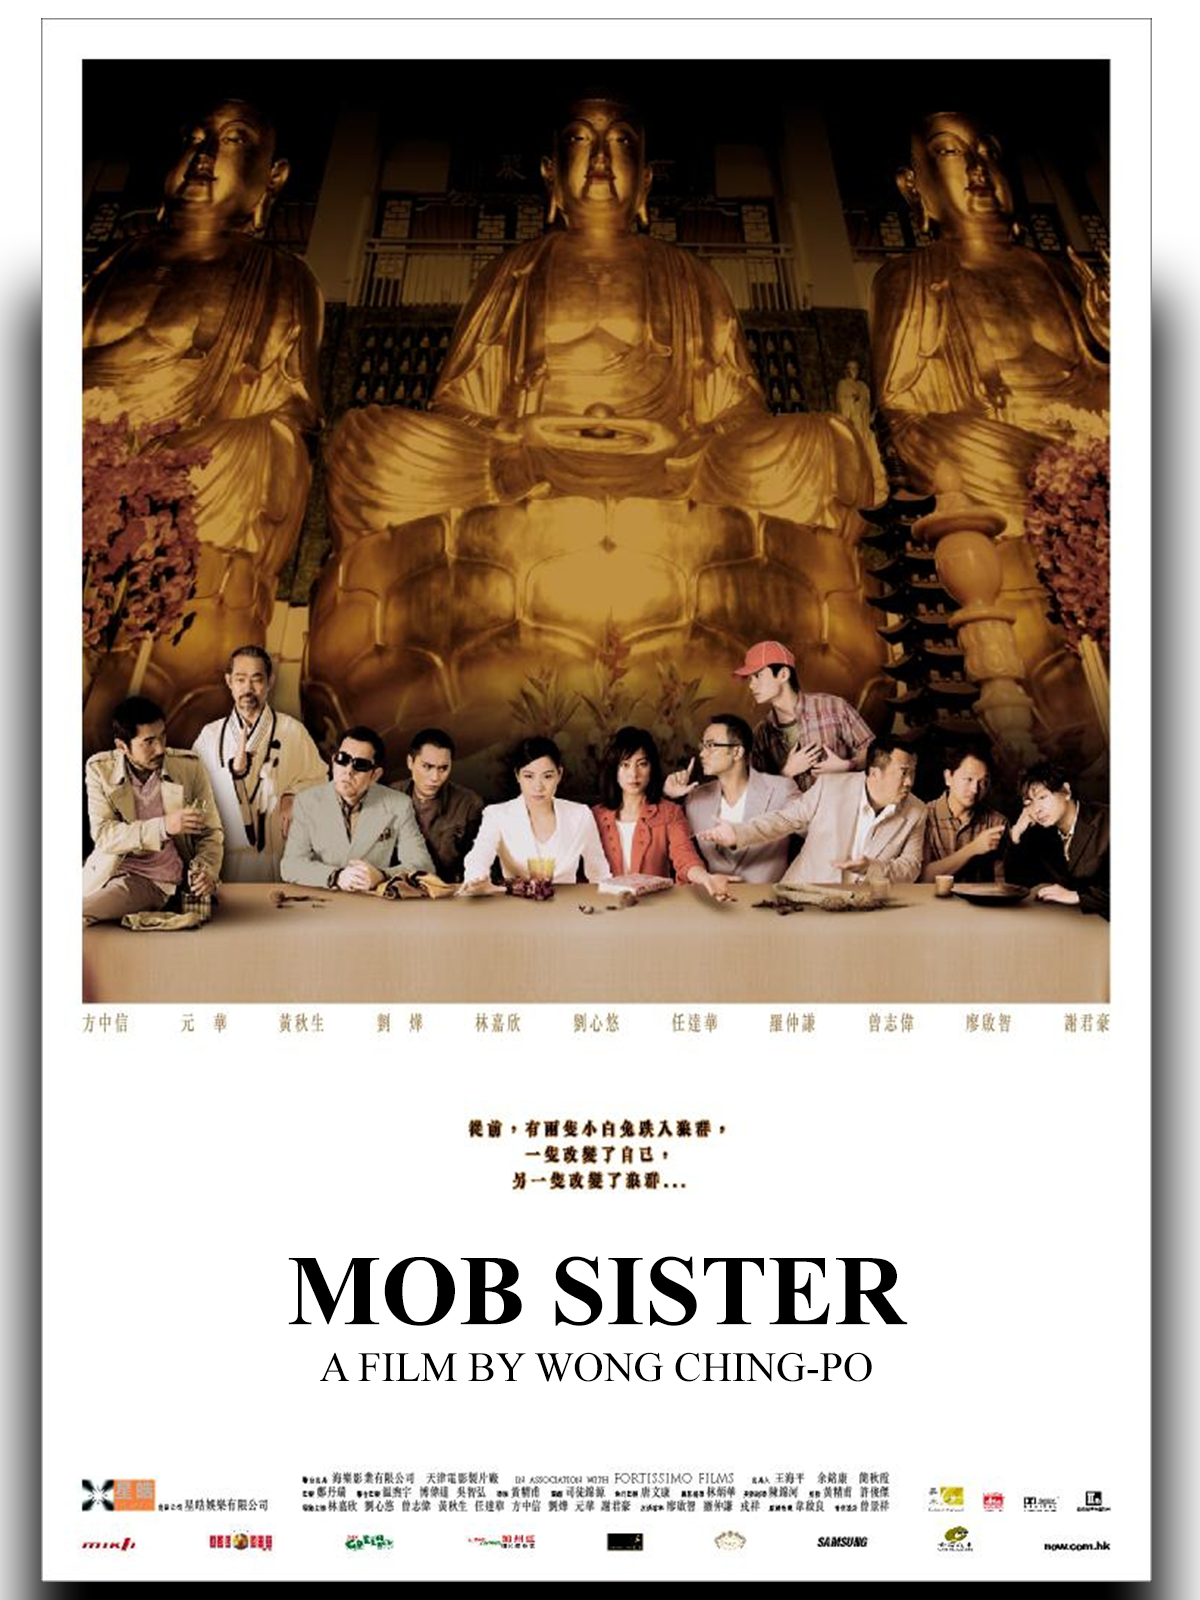 MOB SISTER 1200X1600 ARTWORK AMAZON